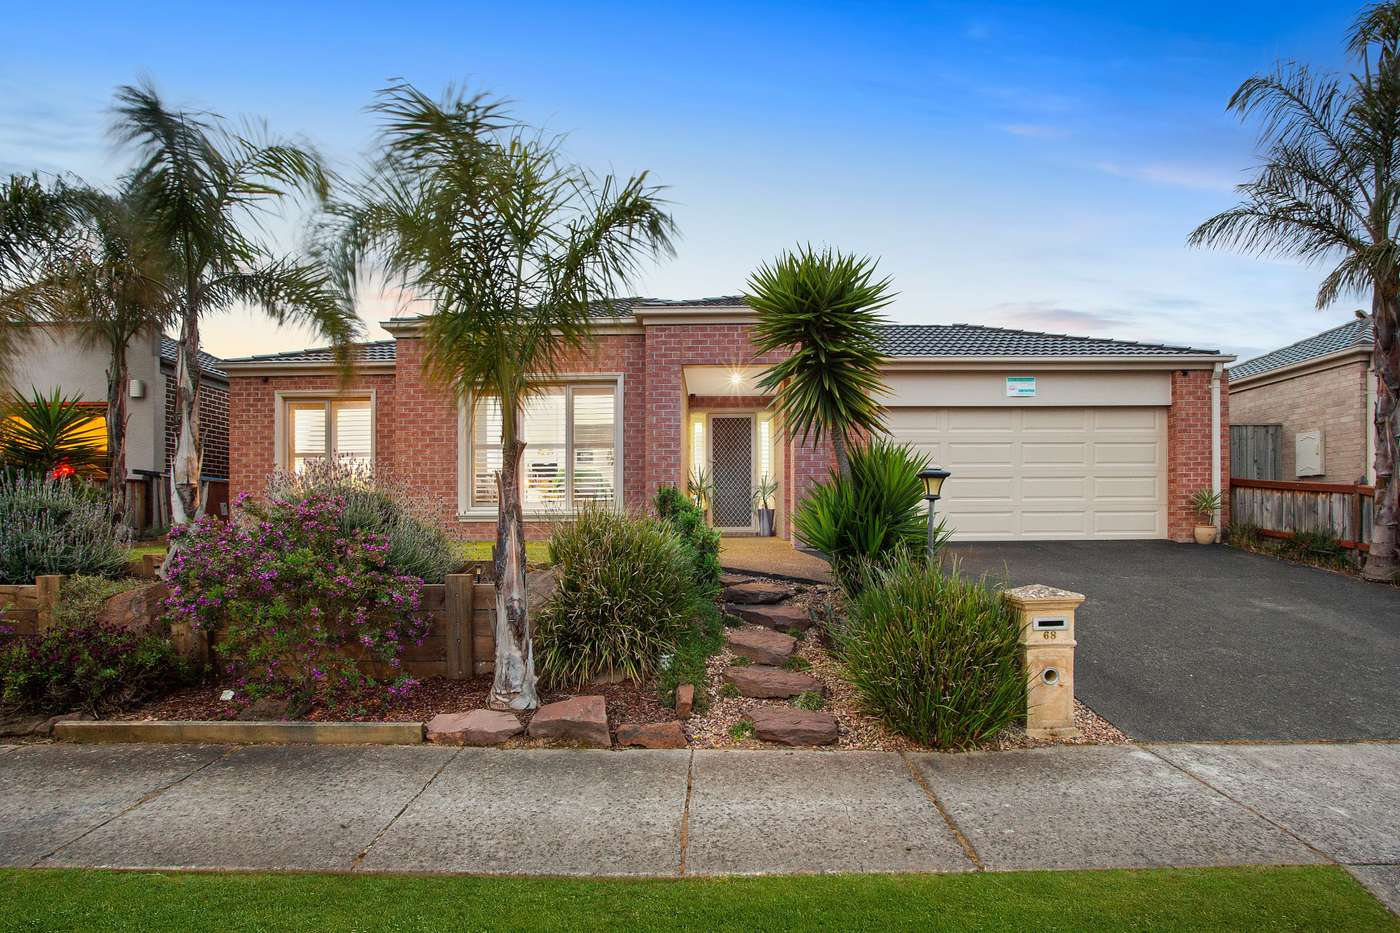 Main view of Homely house listing, 68 Cathedral Rise, Doreen, VIC 3754